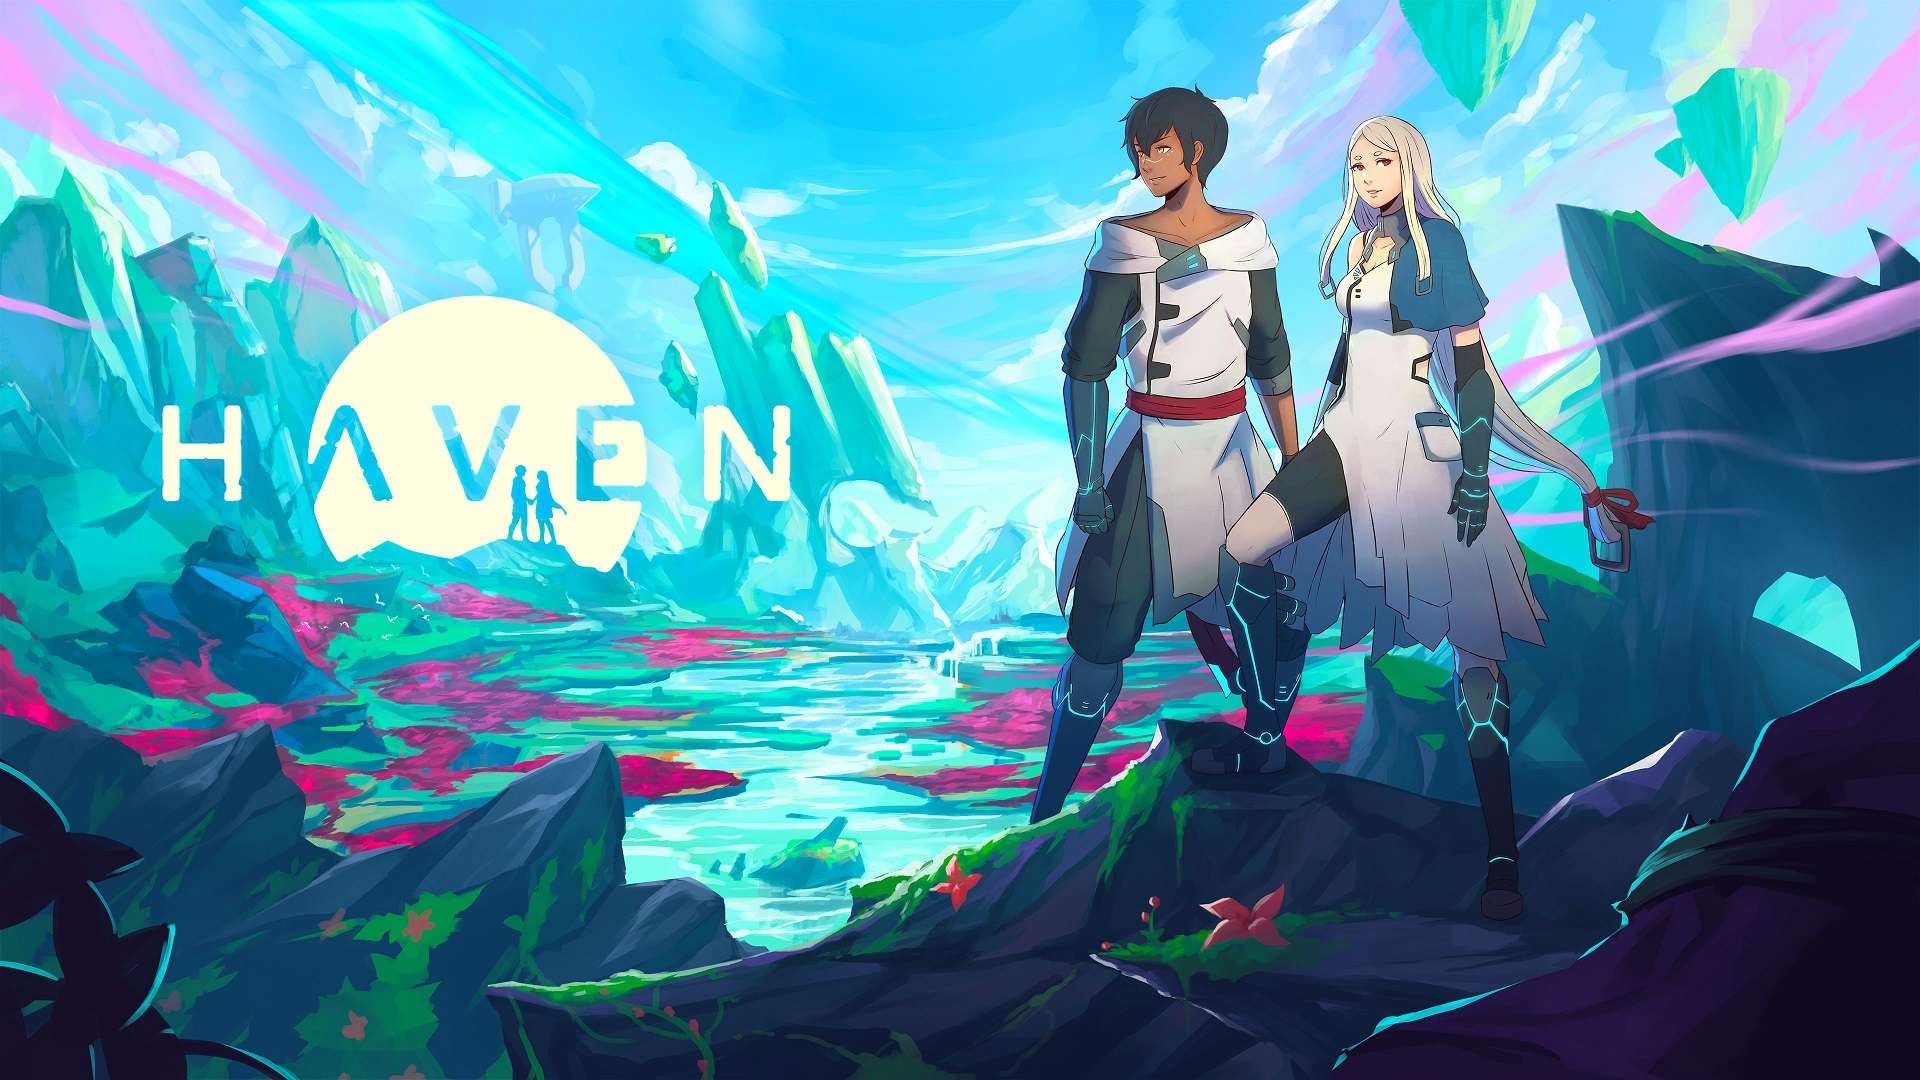 Glide over the plains and fight for love in Haven, Available today